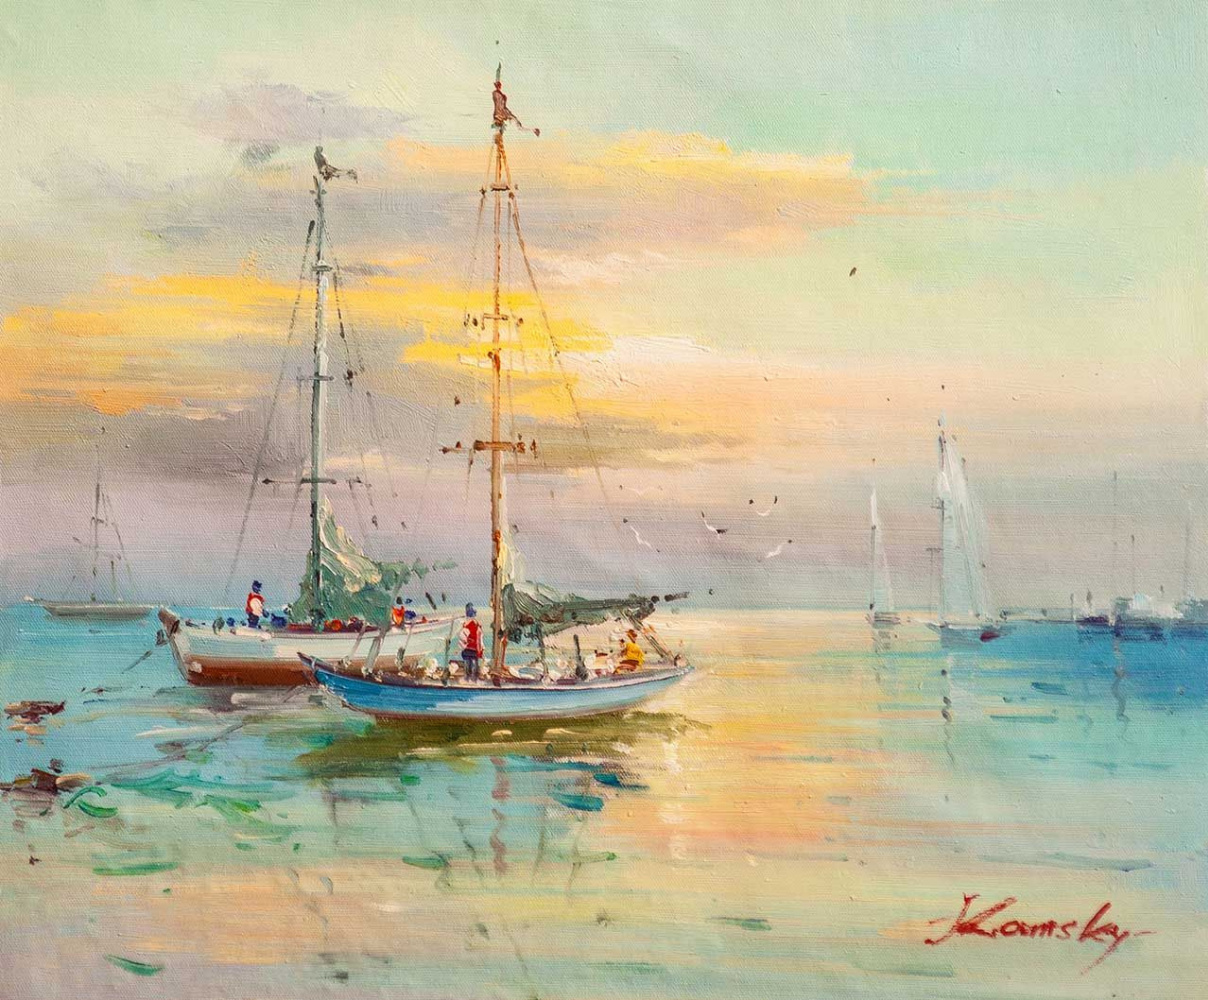 Savely Kamsky. In the silence of the dawn